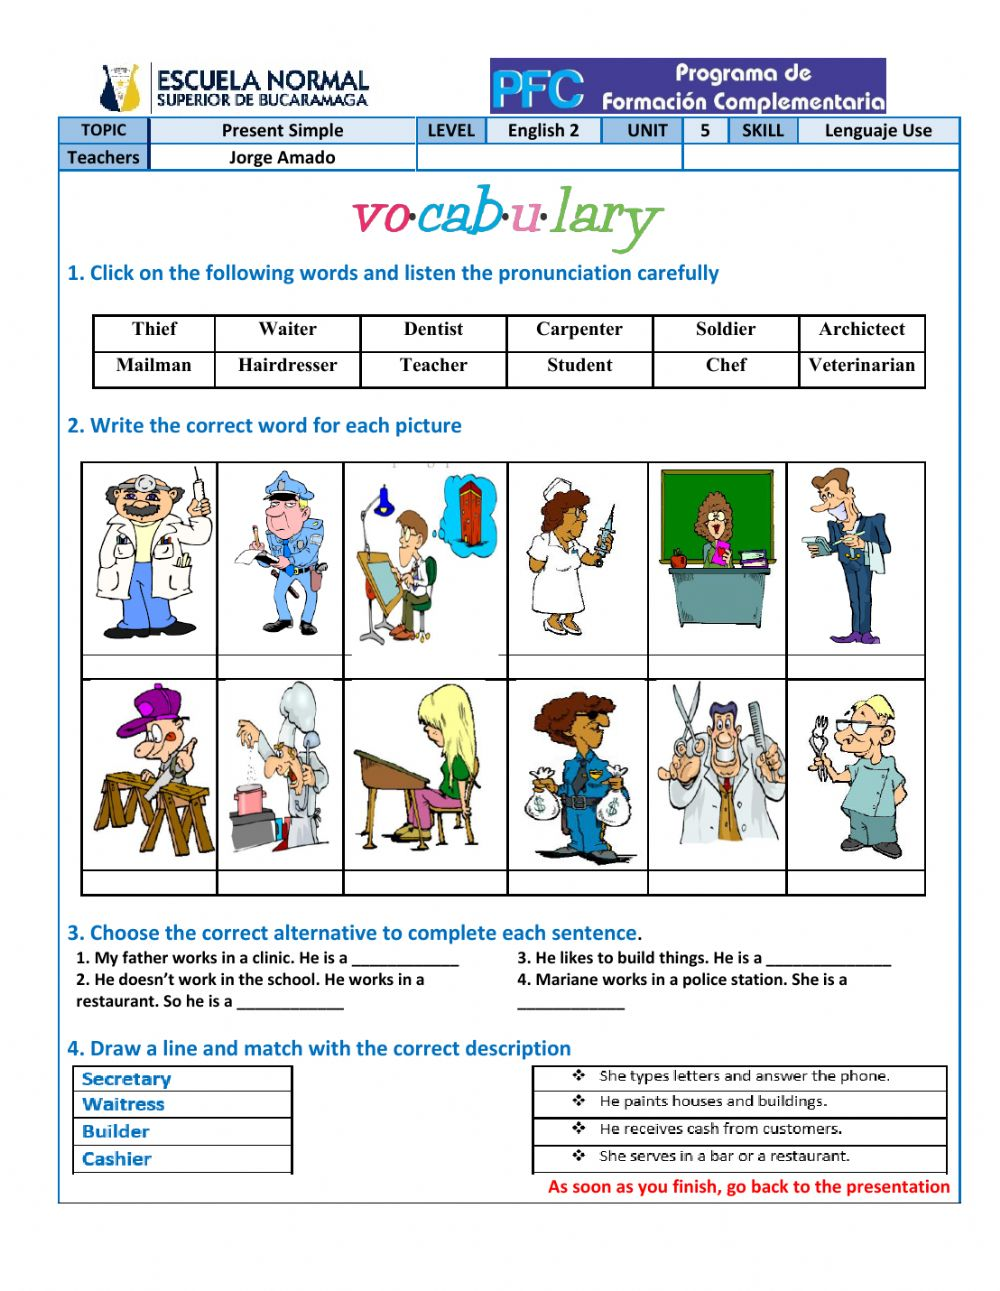 Vocabulary Jobs And Occupations Worksheet